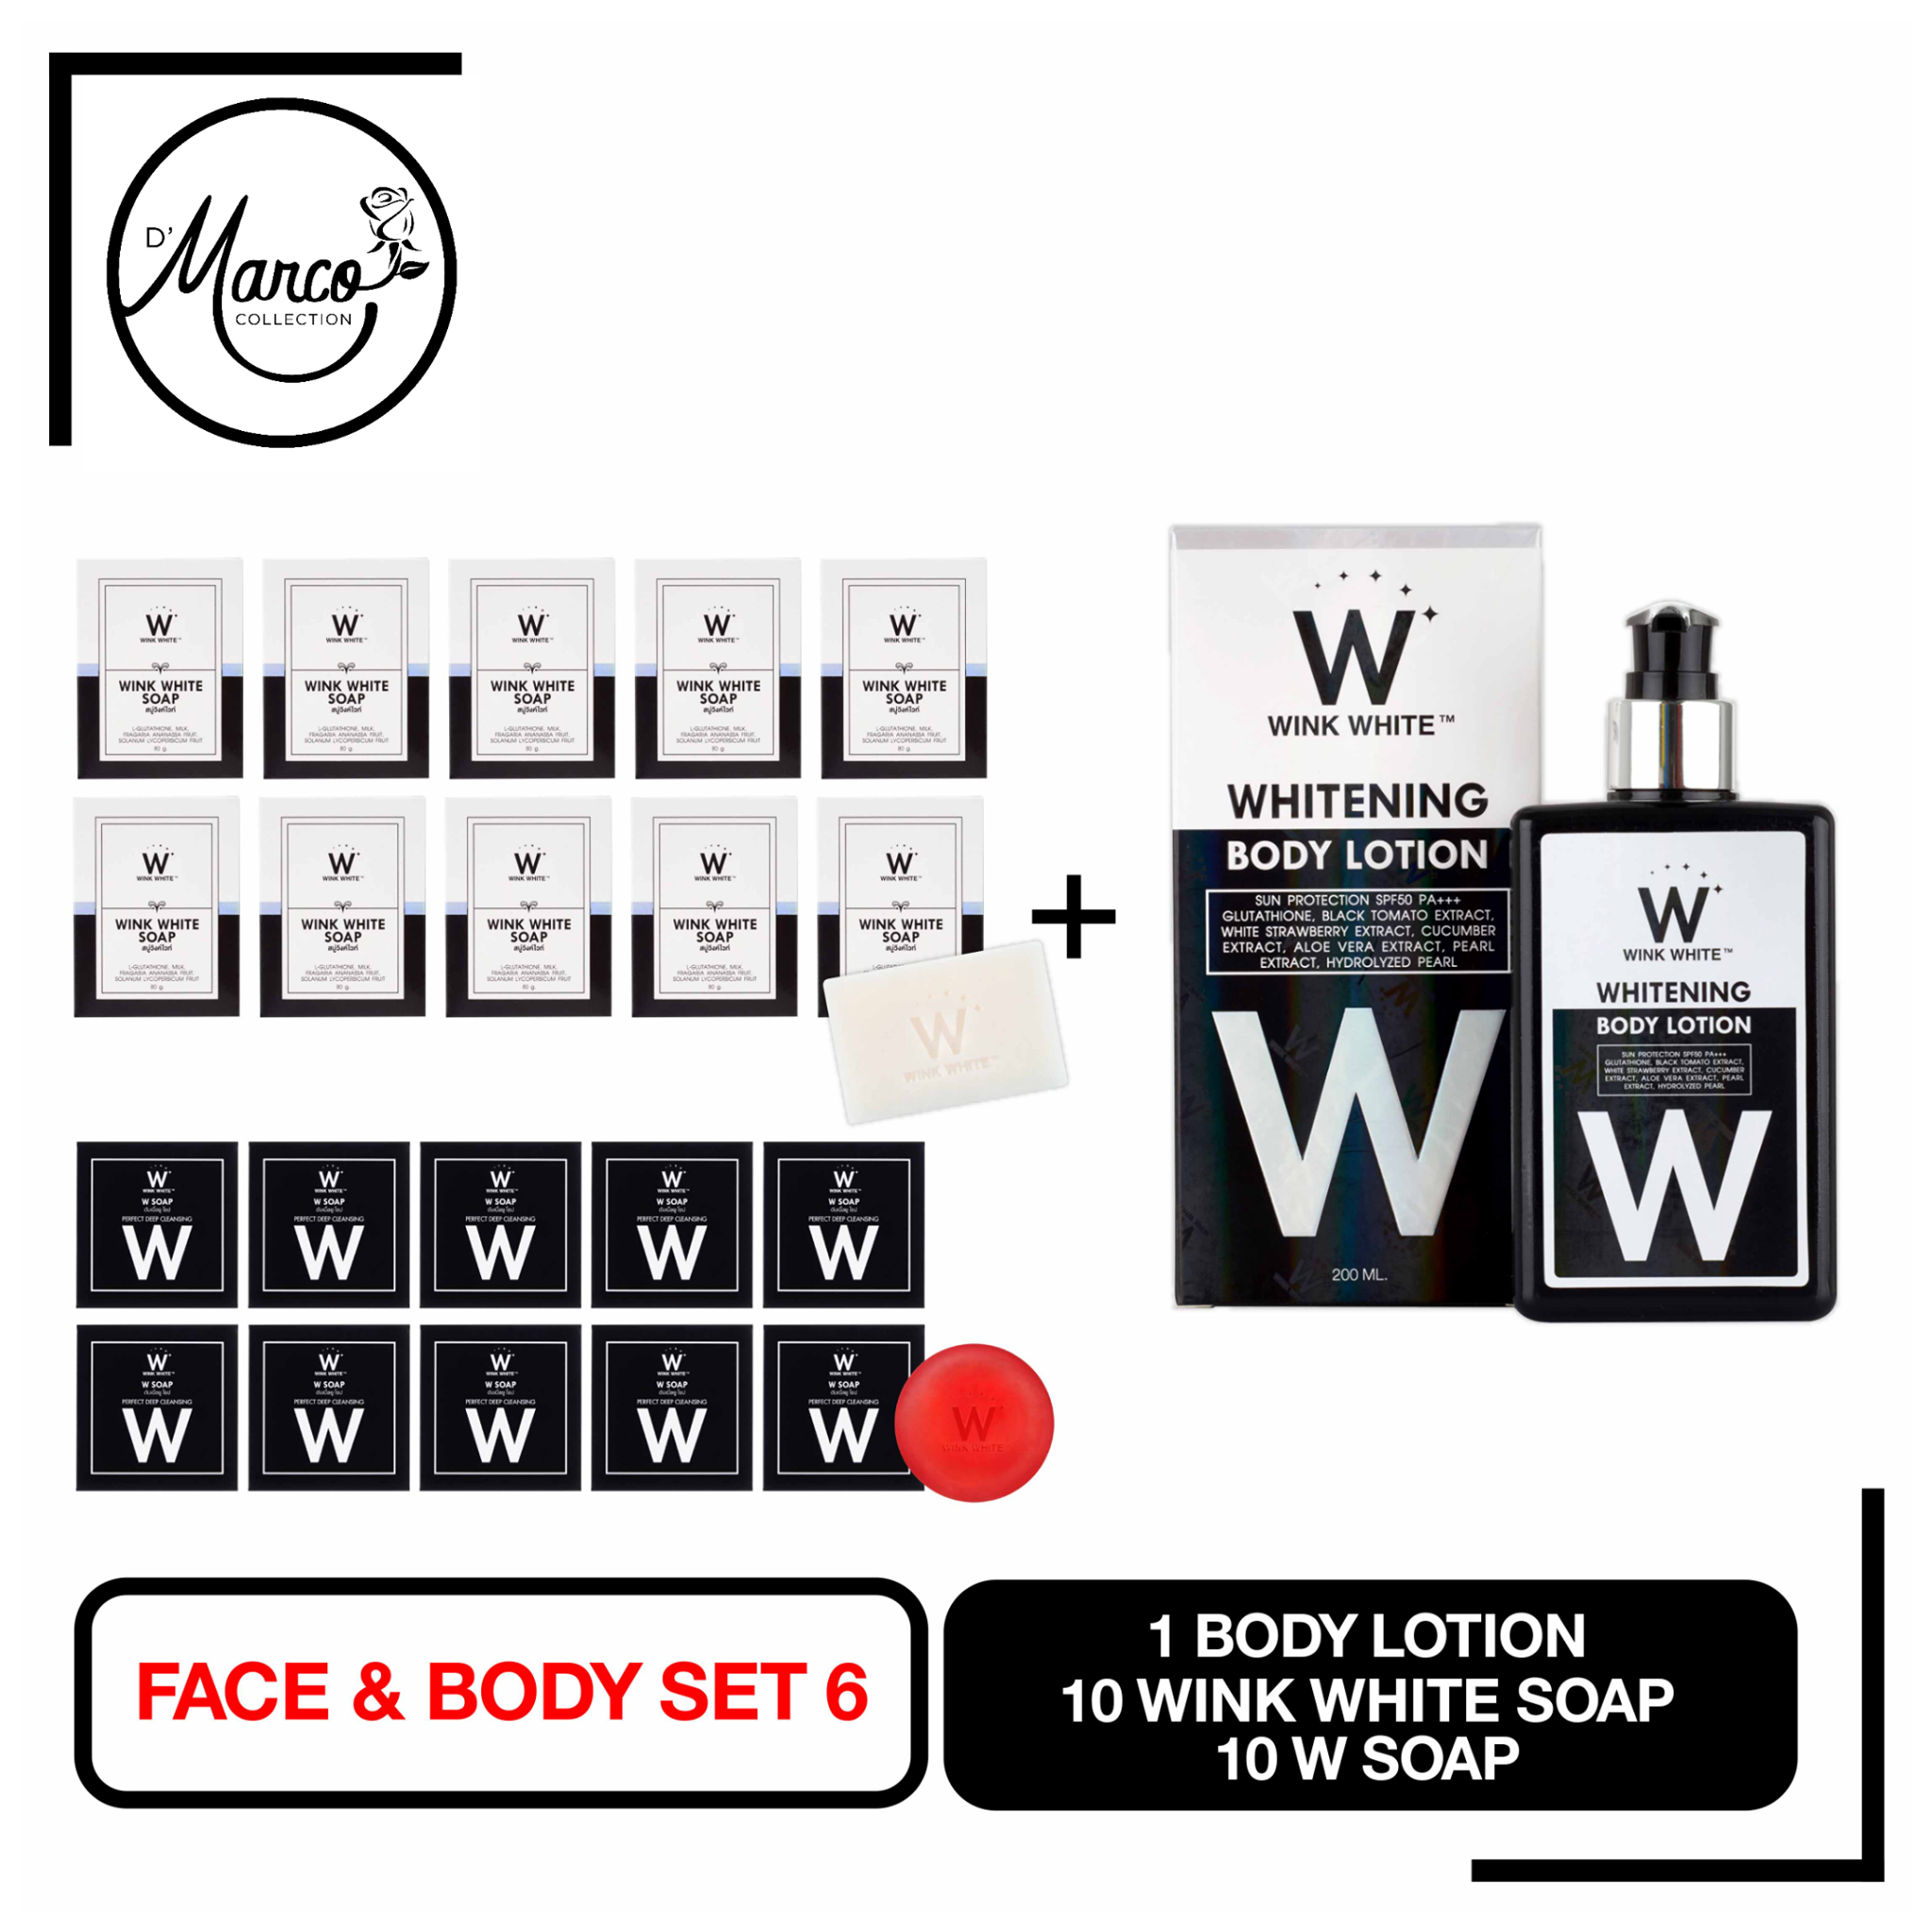 Set 6, 10 Wink White Soap, 10 W Soap, 1 Body Lotion